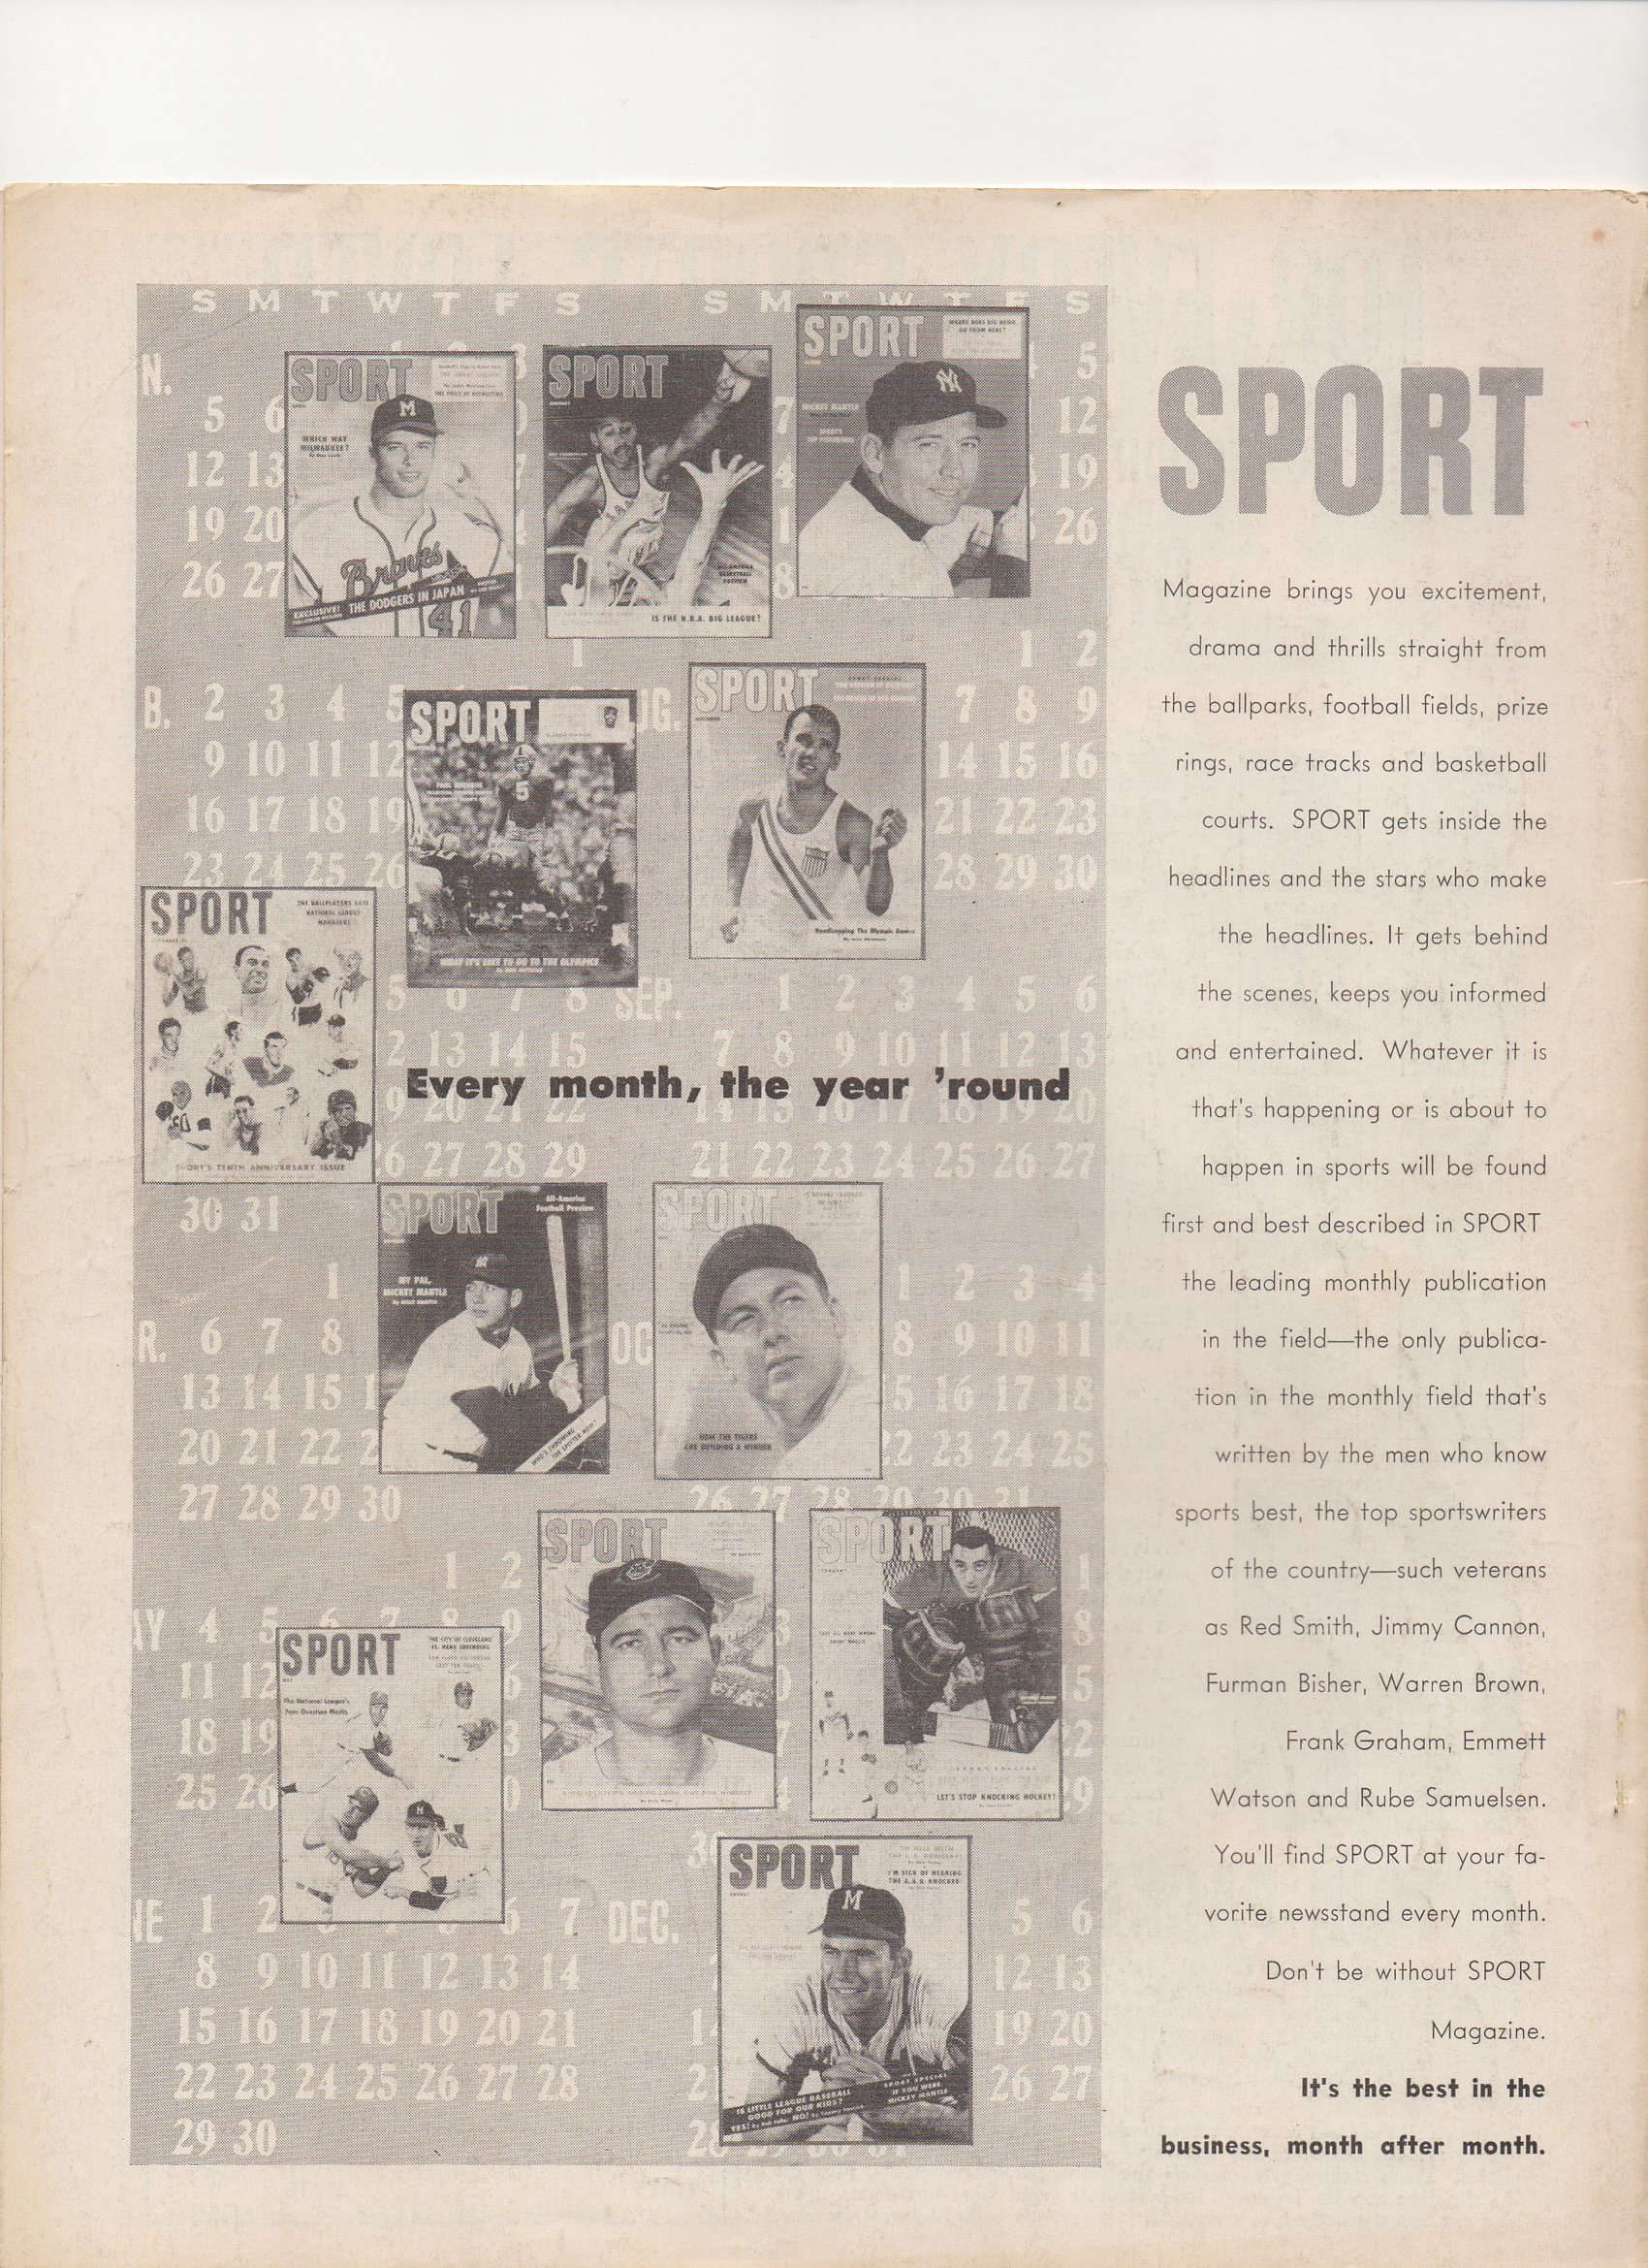 1958 baseball all stars, bartholomew house inc.